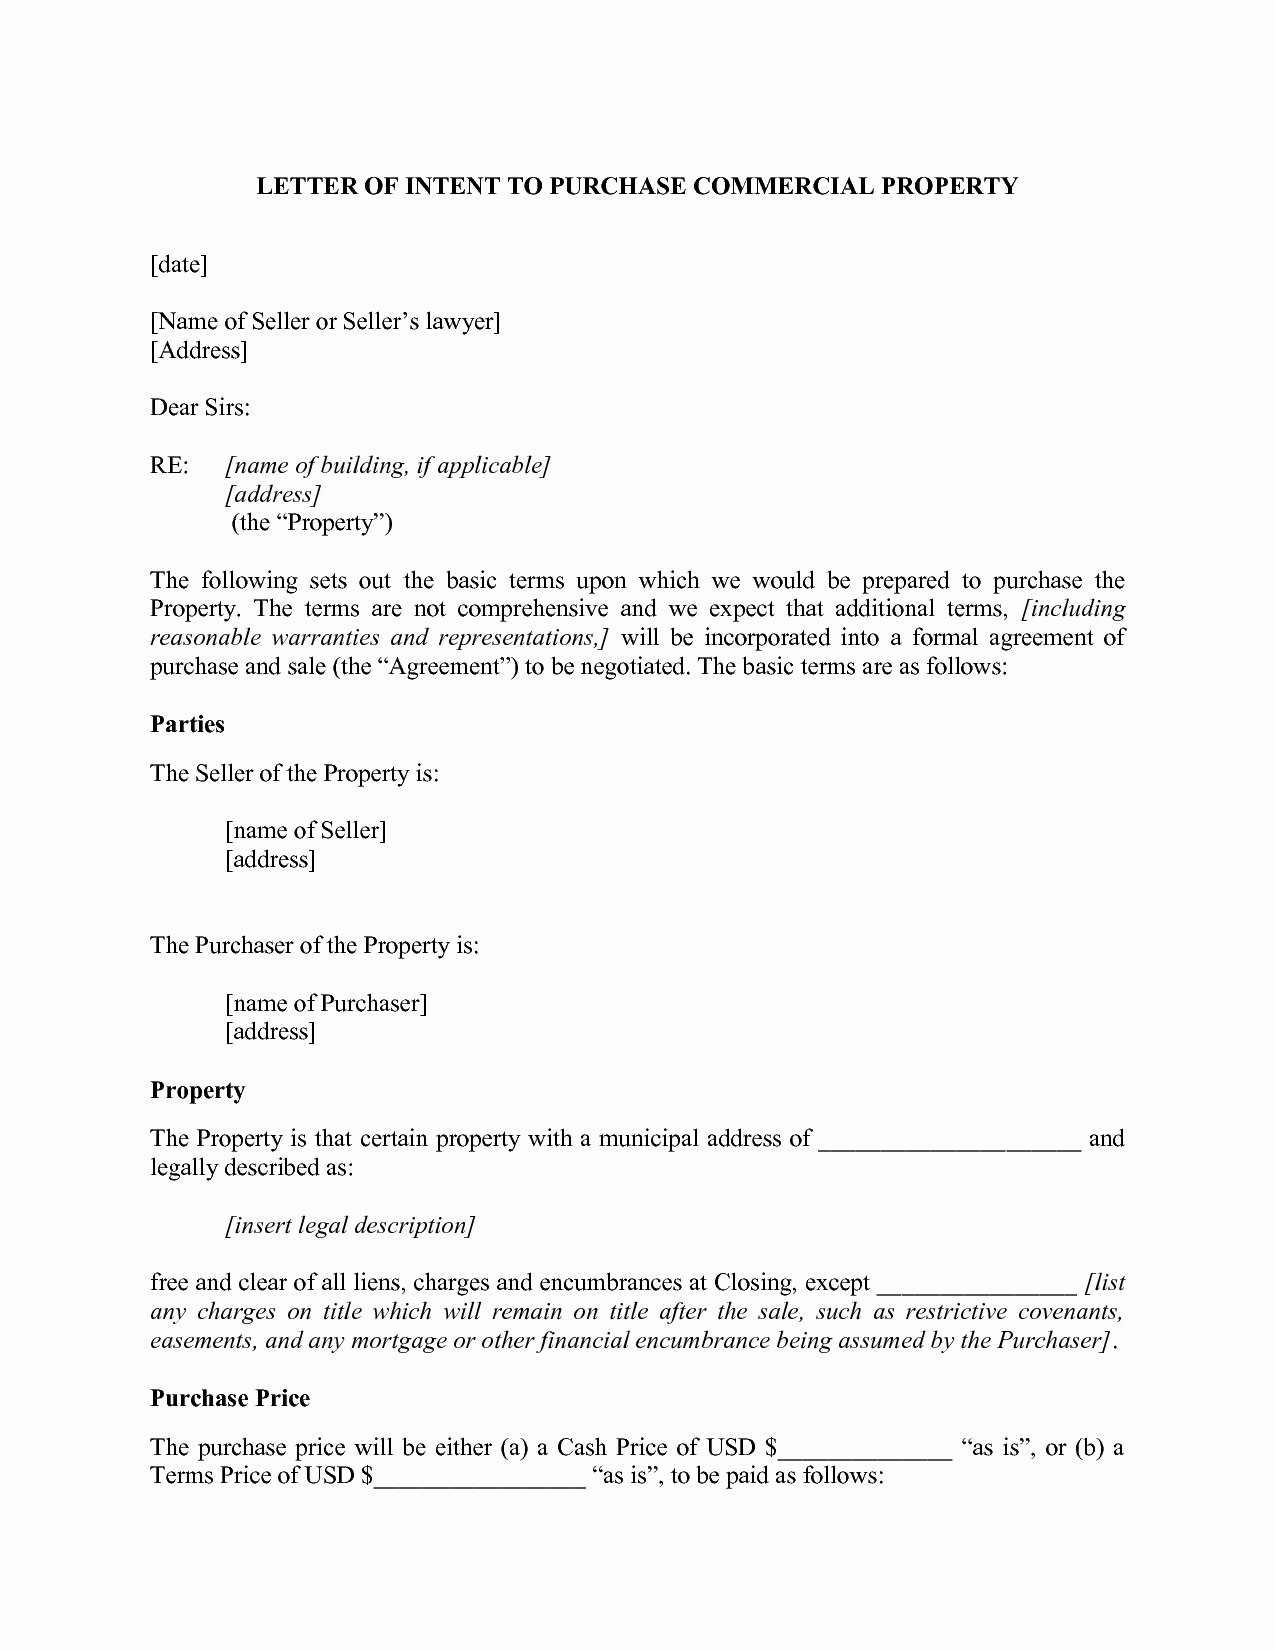 Letter Of Intent to Purchase Real Estate Template Beautiful Mercial Real Estate Letter Intent to Purchase